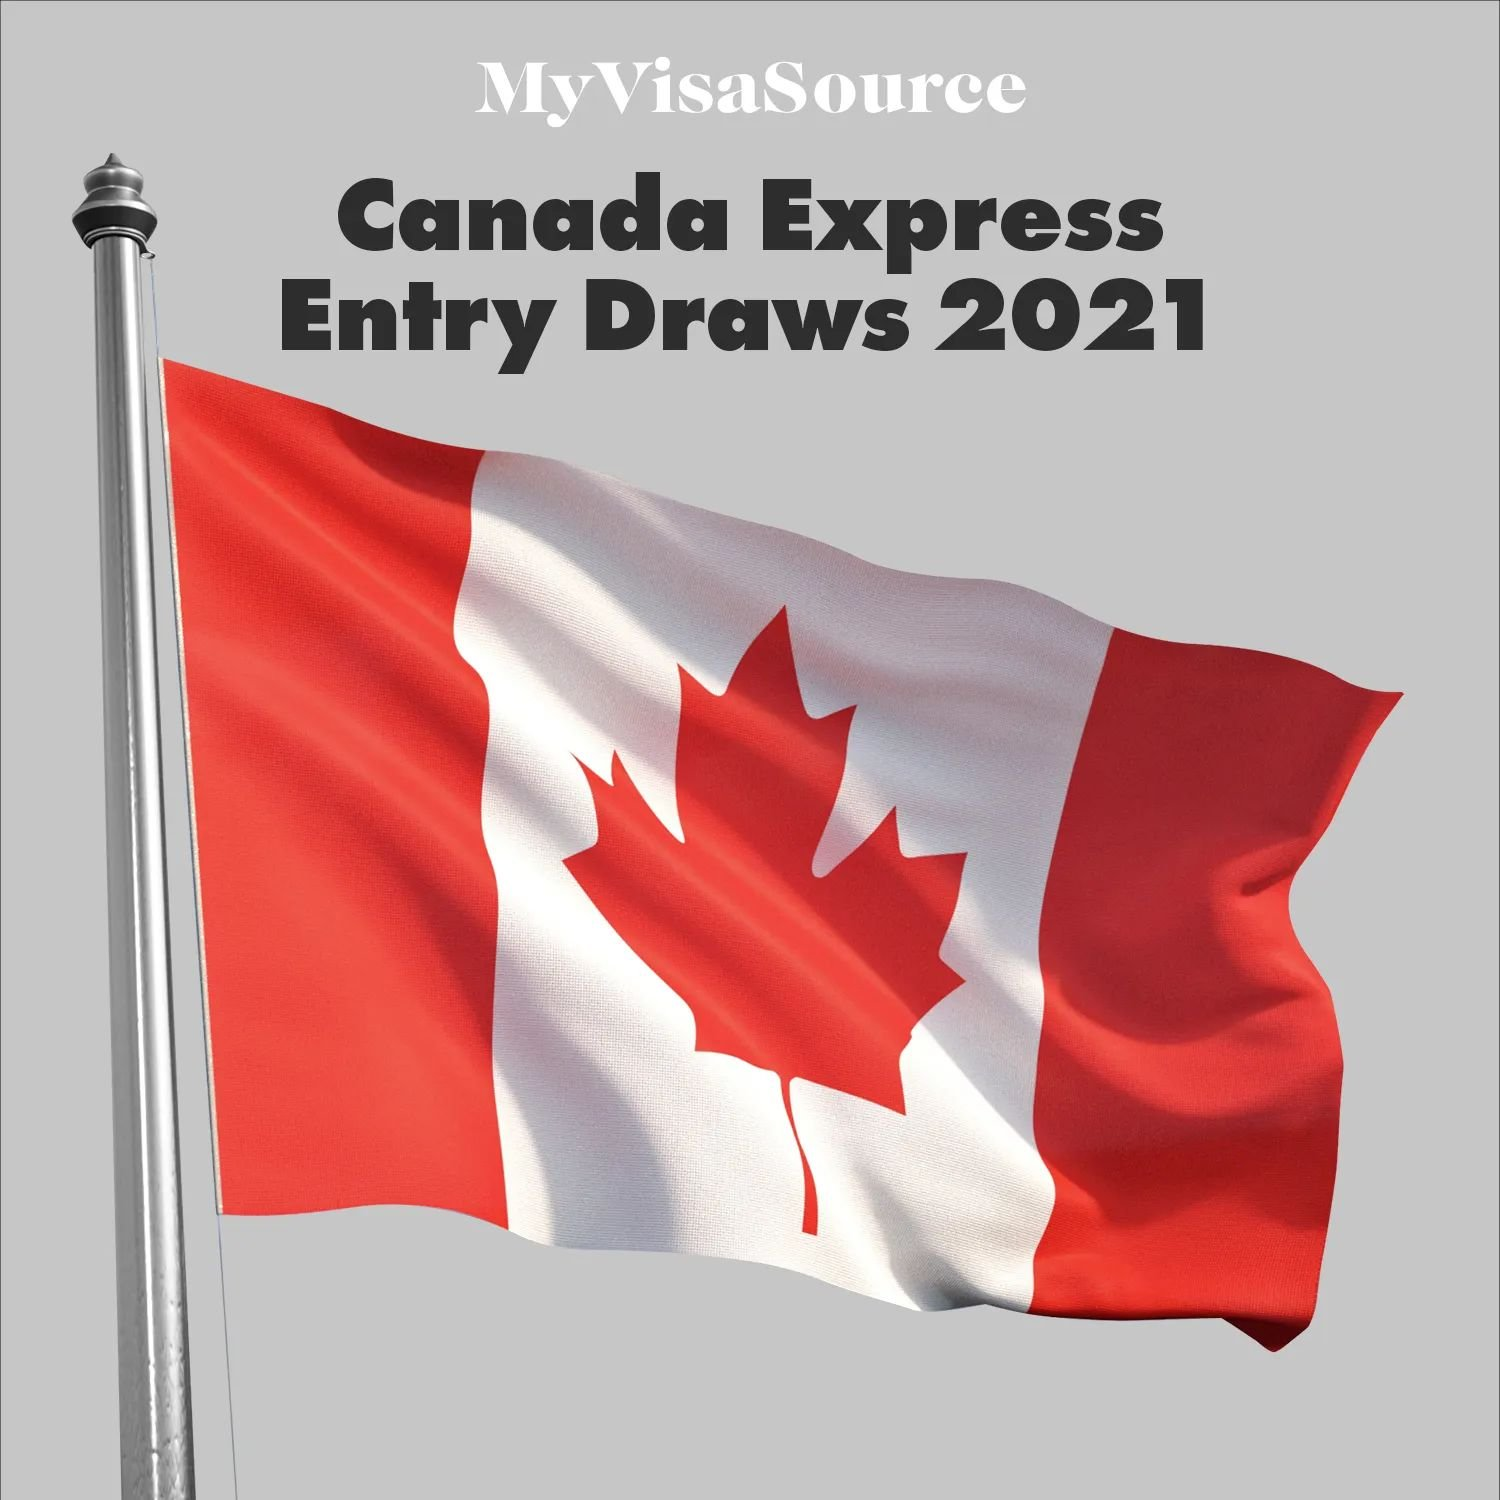 a canadian flag by my visa source